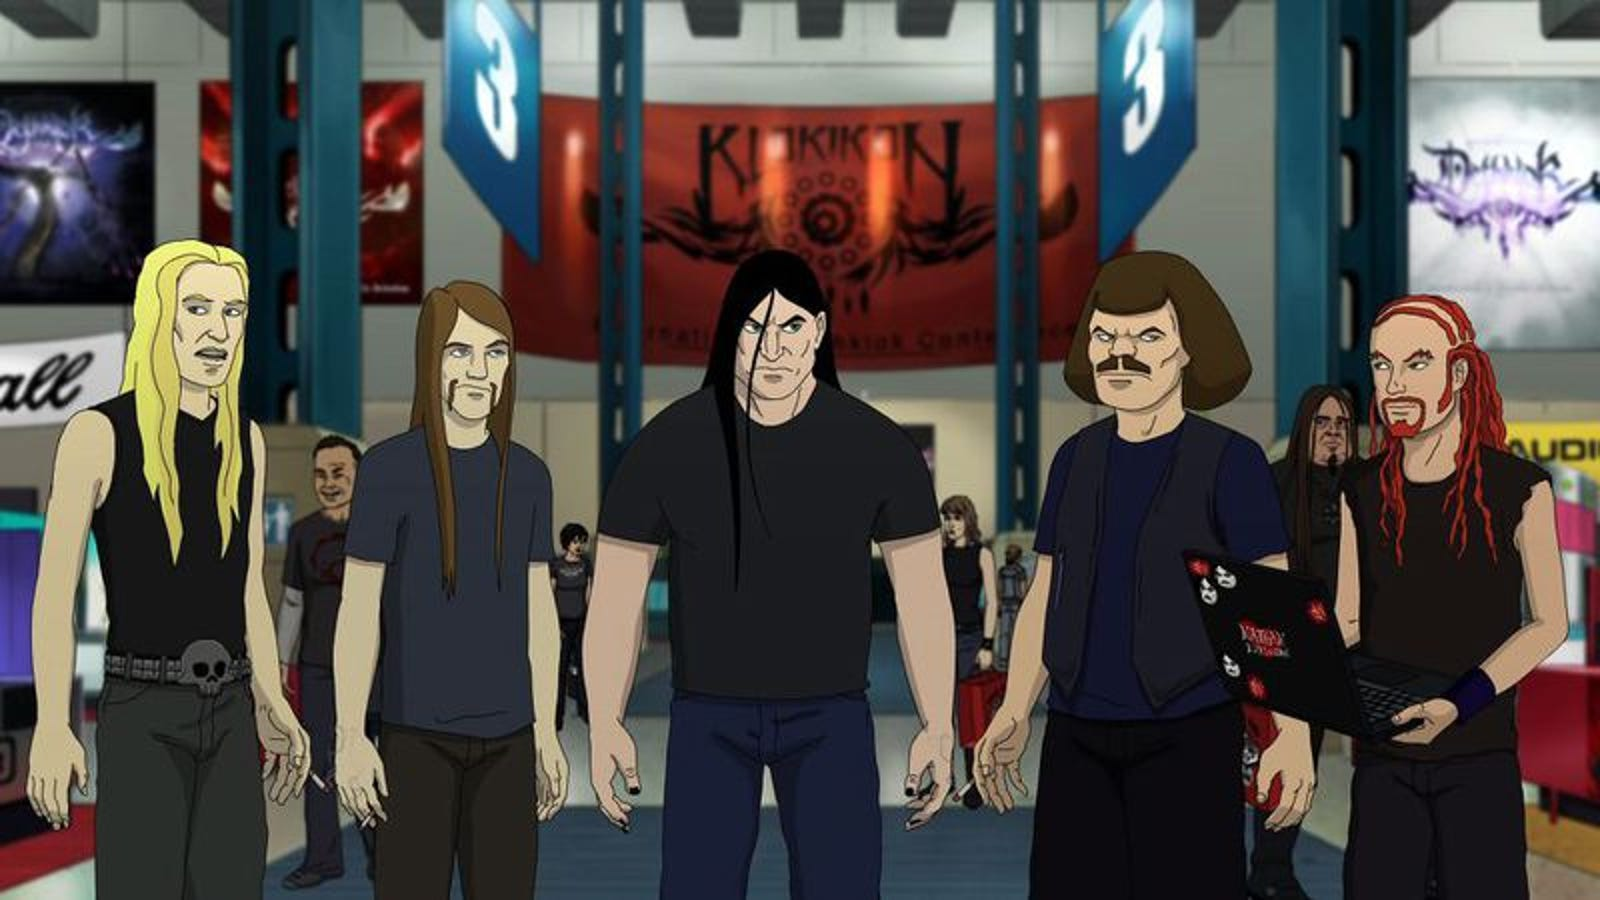 beat it, tommy! up yours, the wall! here comes the metalocalypse